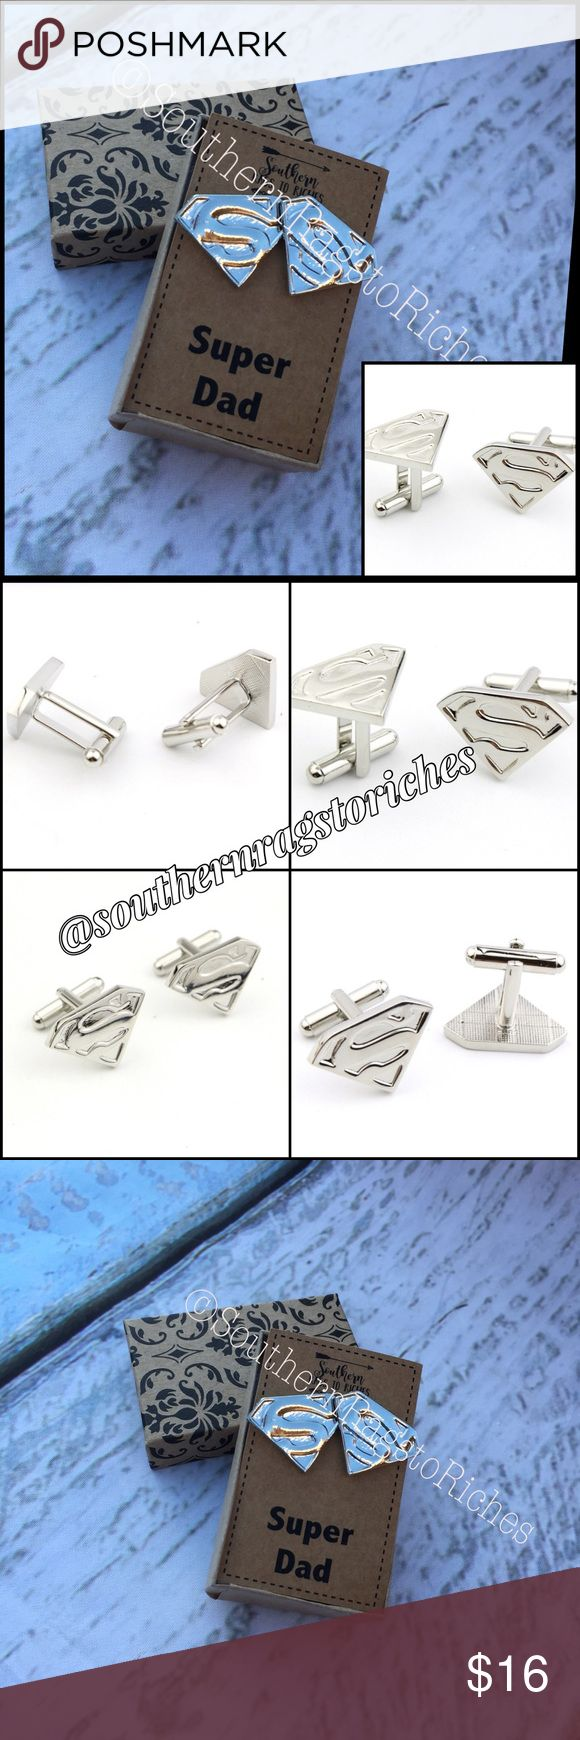 """Superman Cuff Links Personalized Gift for Father Check out these awesome, new Superman Cuff Links in! Perfect Gift for a Super Dad! In silver!  Comes in free Gift Box with free card with the quote """"Super Dad"""" printed  You can choose to NOT have that quote & personalize it with the person's name: Ex: """"Super Dave""""       """"You're my Favorite Superhero""""  Or another personal message (Depending upon length of the message).   If you want a personalized message, send me a message as soon as you…"""